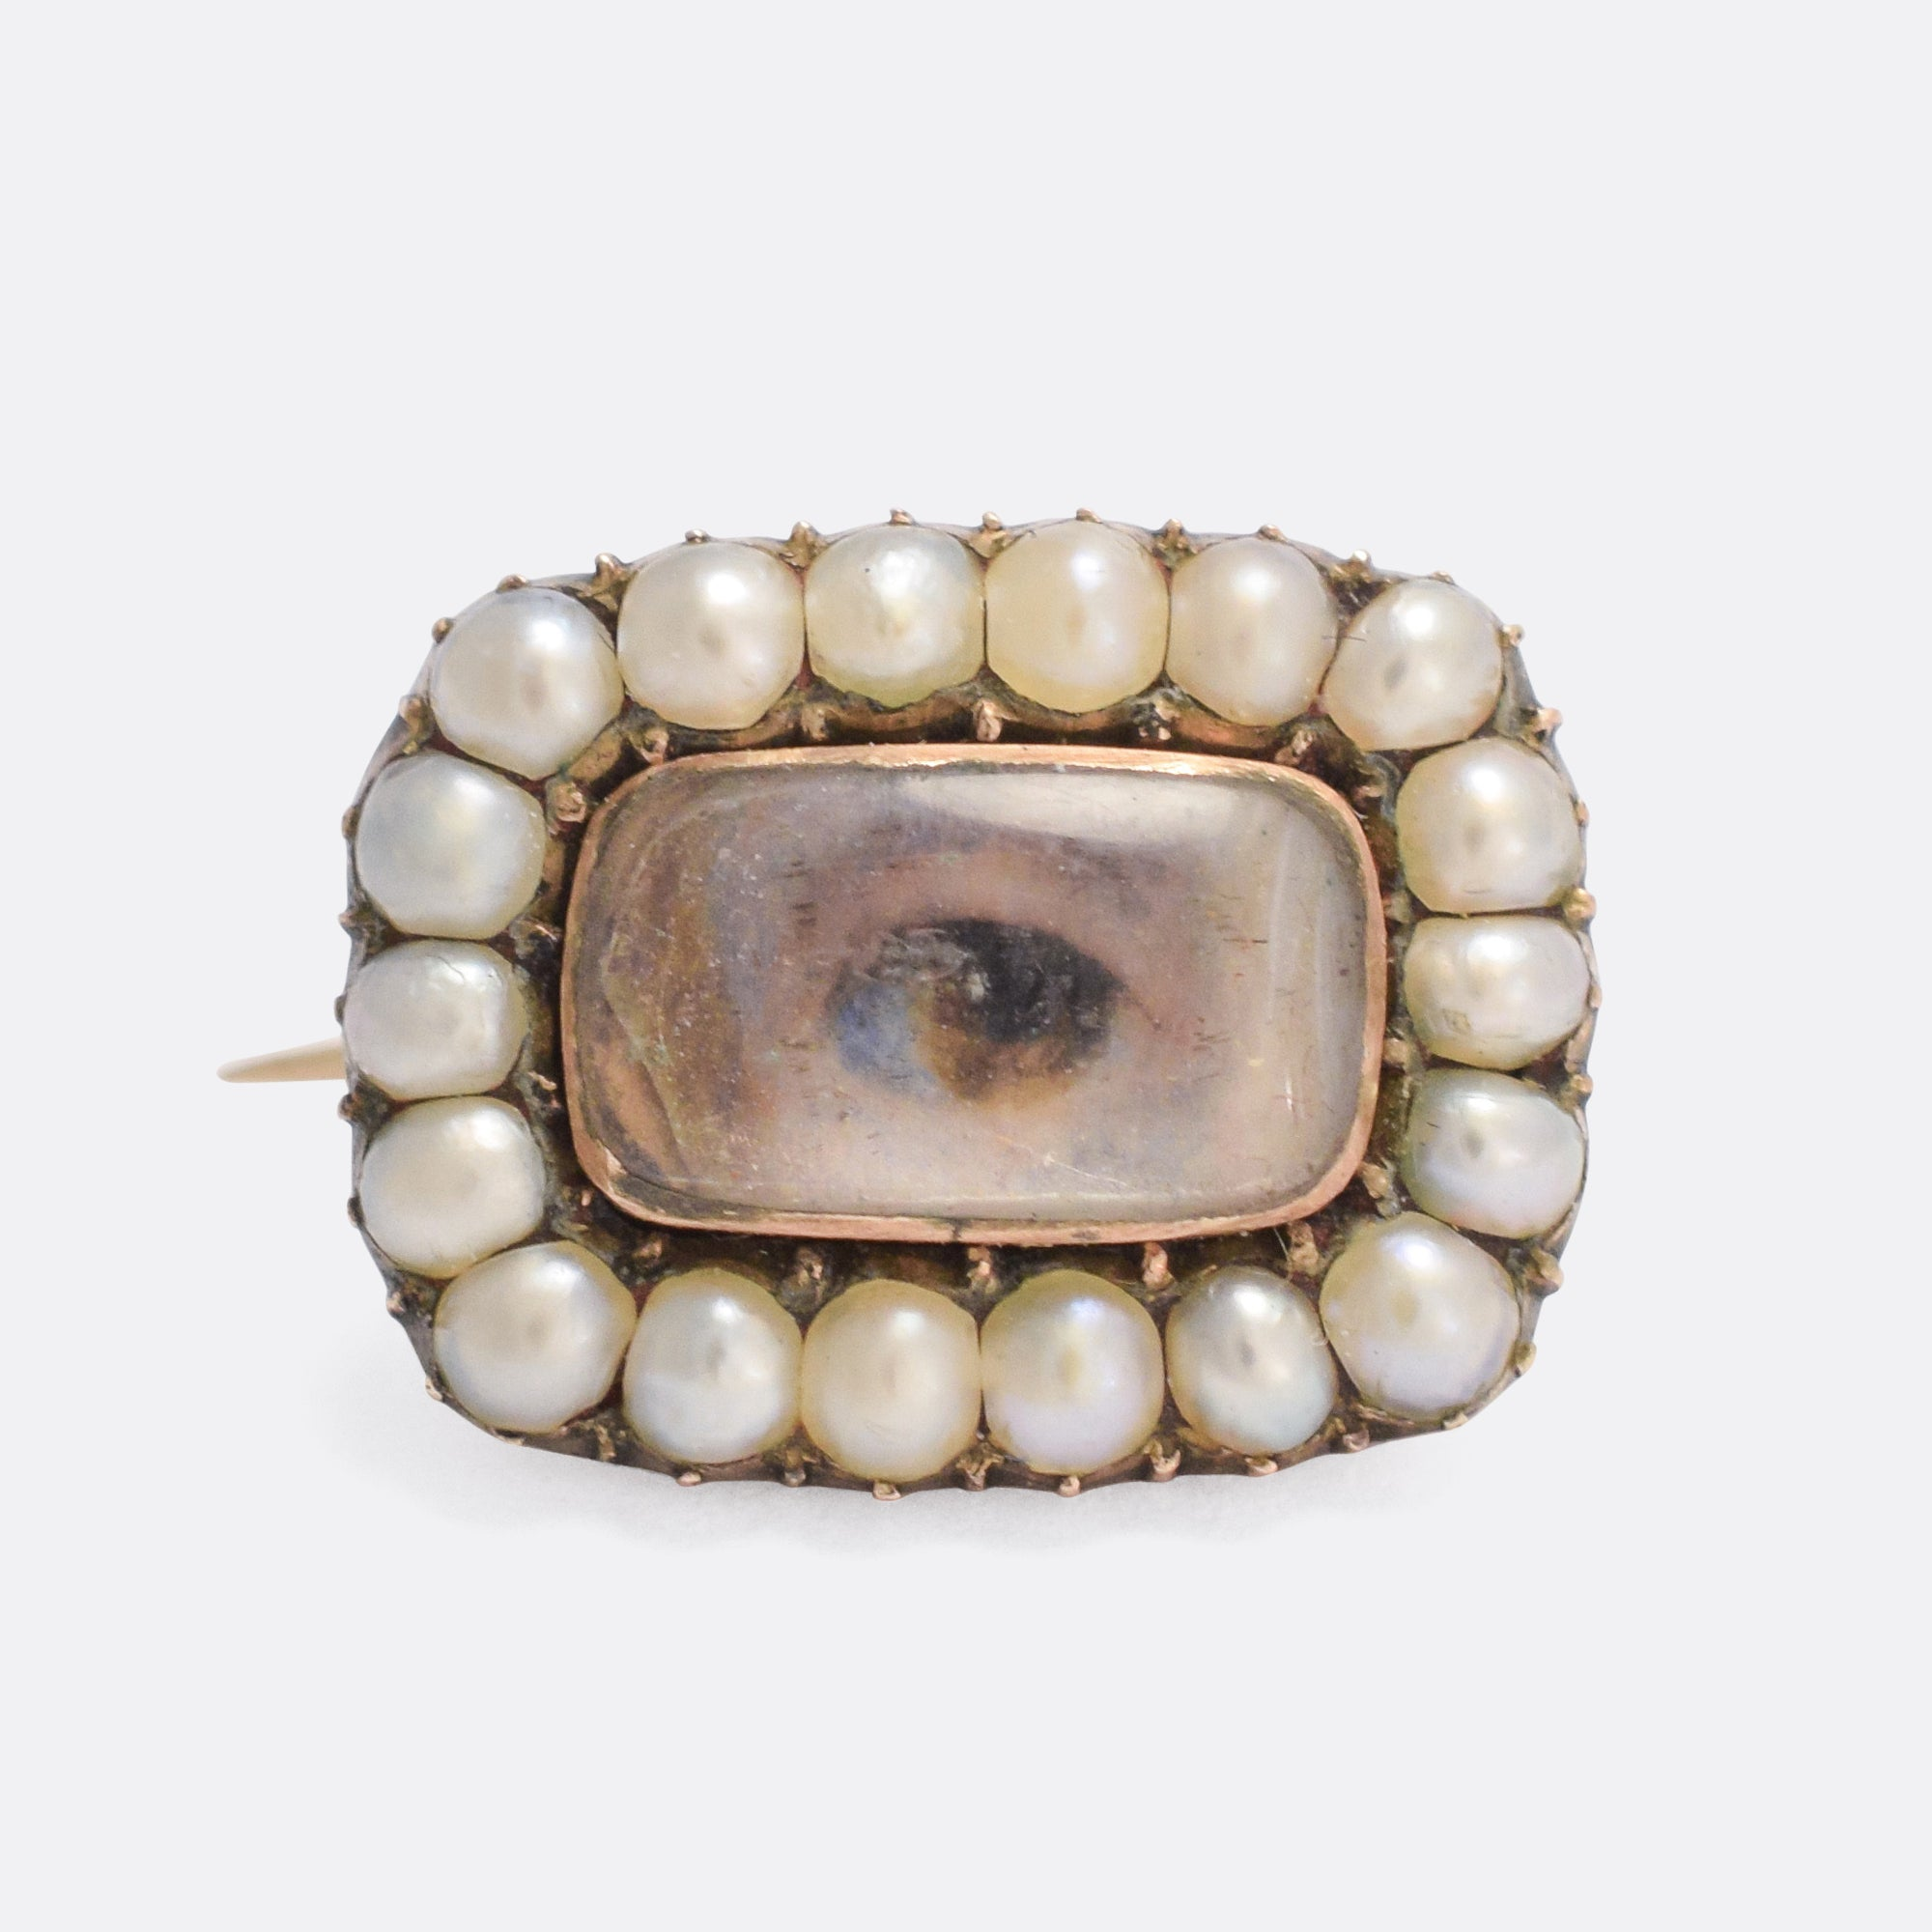 eye brooch eboutique s emblematic figaredo handbags in